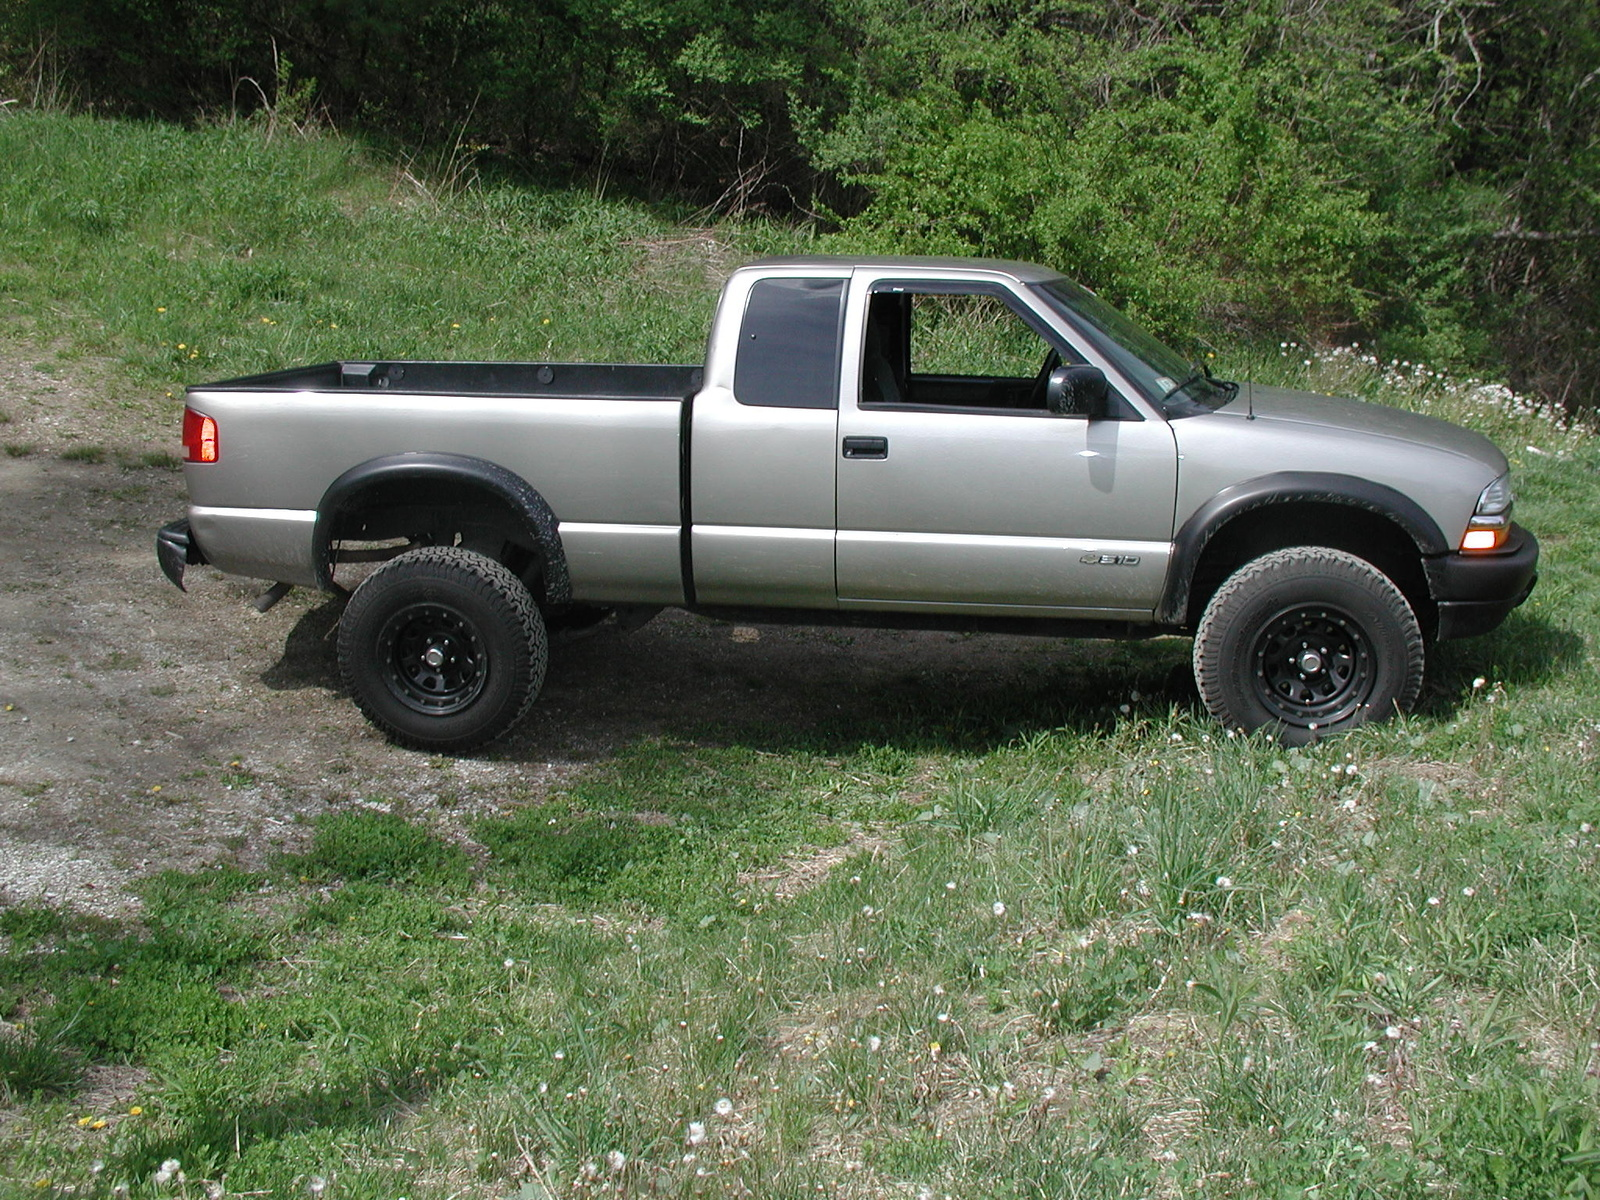 2003s 10 Zr2 Wiring Diagram Circuit Schematic 2003 Chevrolet S10 Gmc S Questions Does My Have The Off Road Package